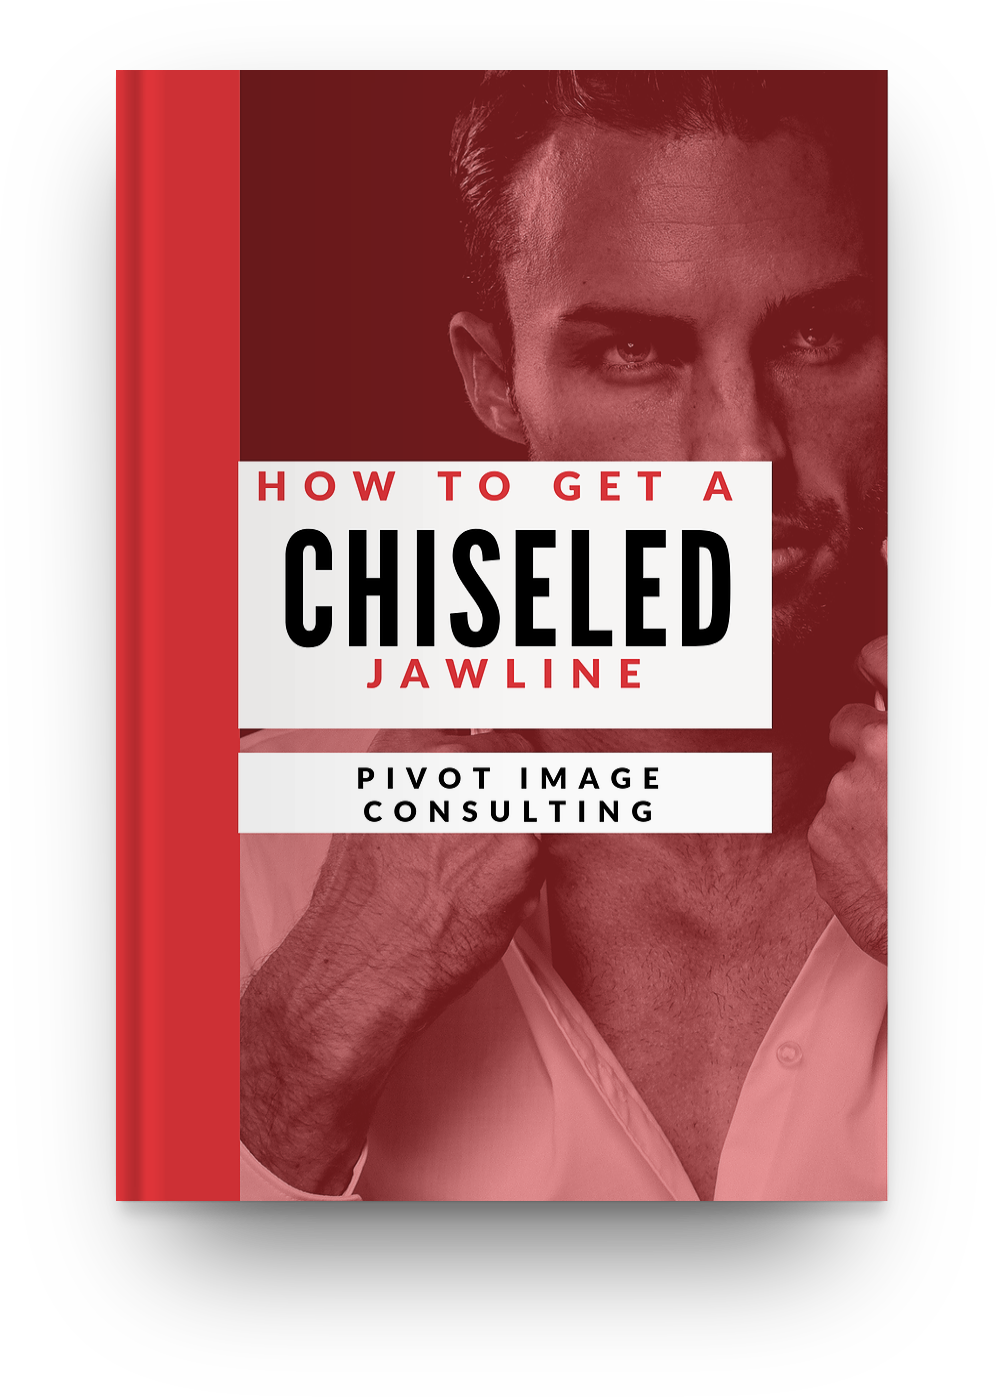 Chiseled-jawline-book.png